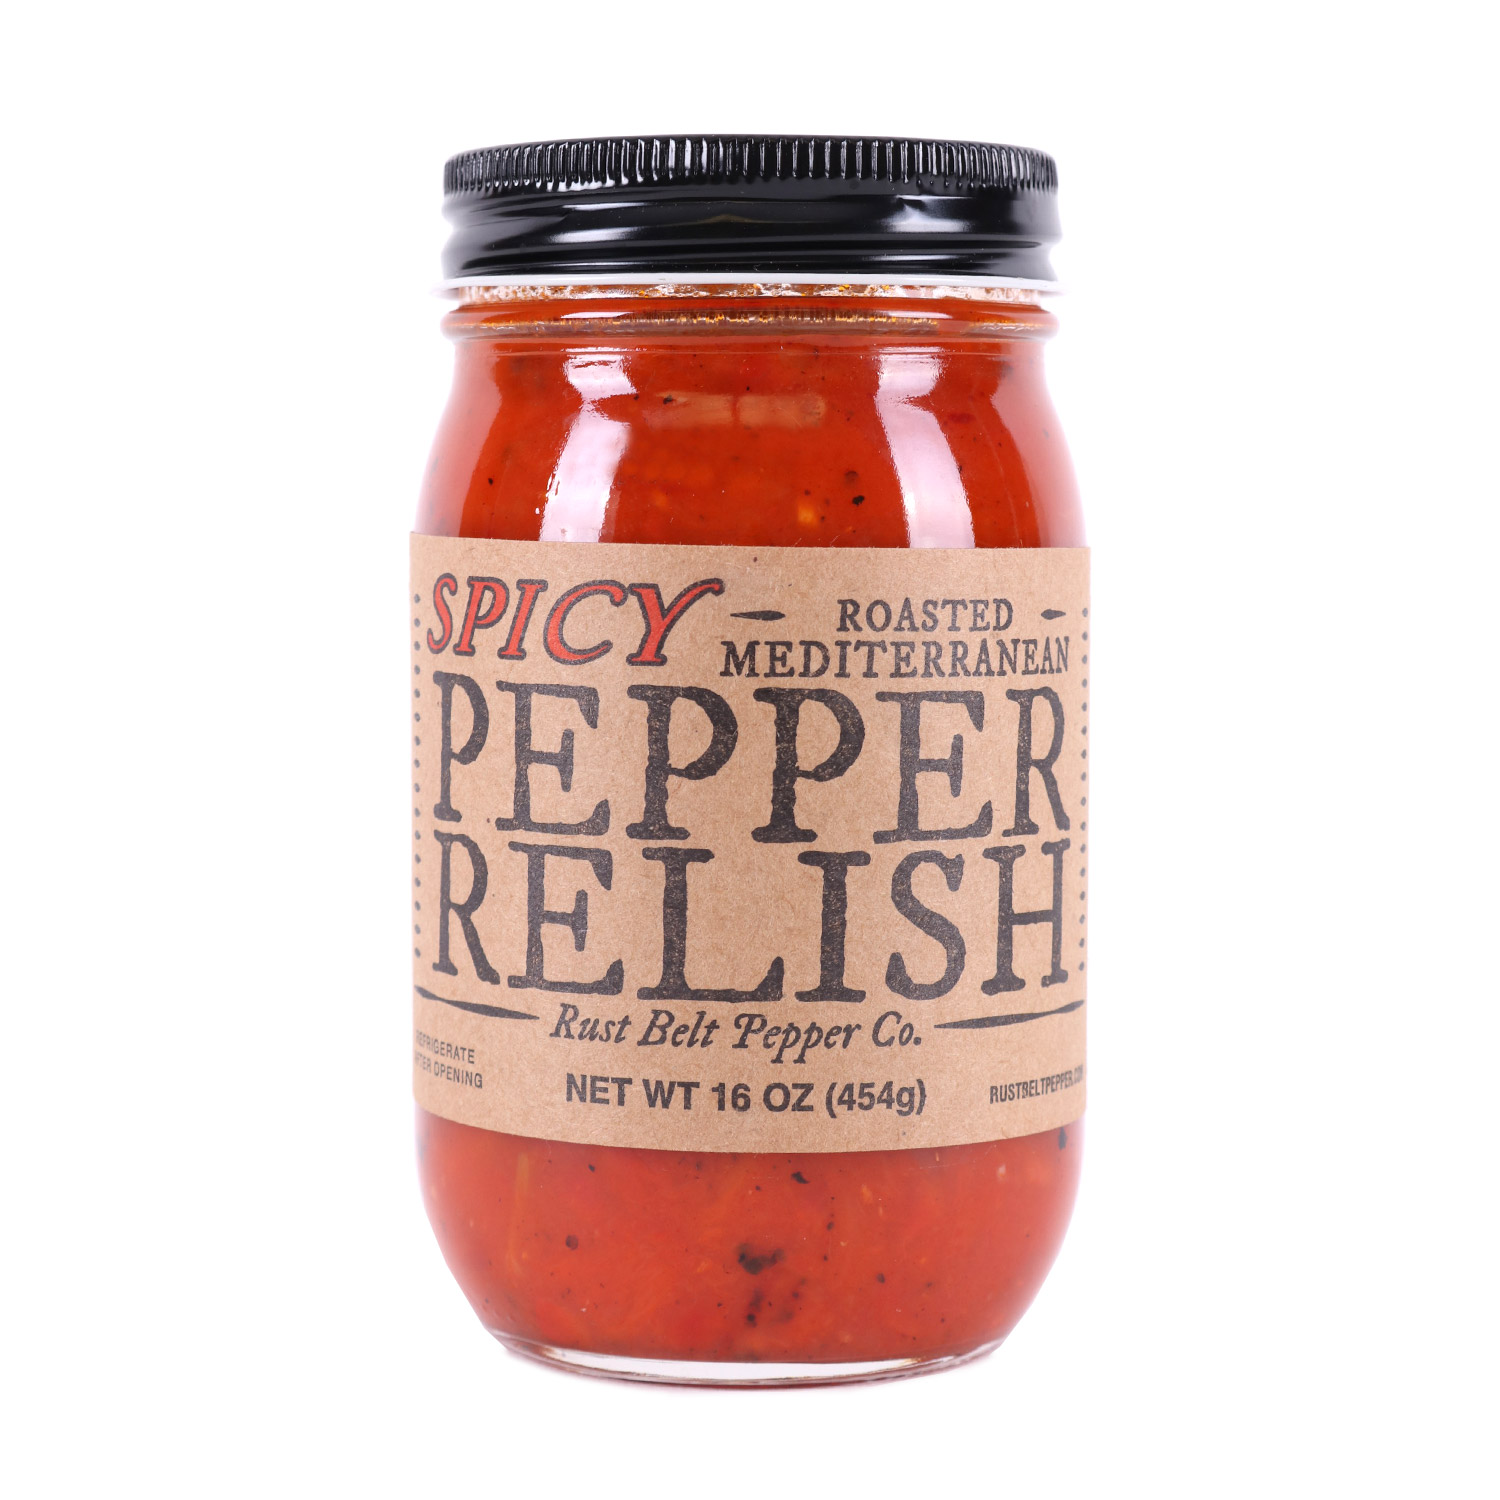 Spicy Roasted Mediterranean Pepper Relish